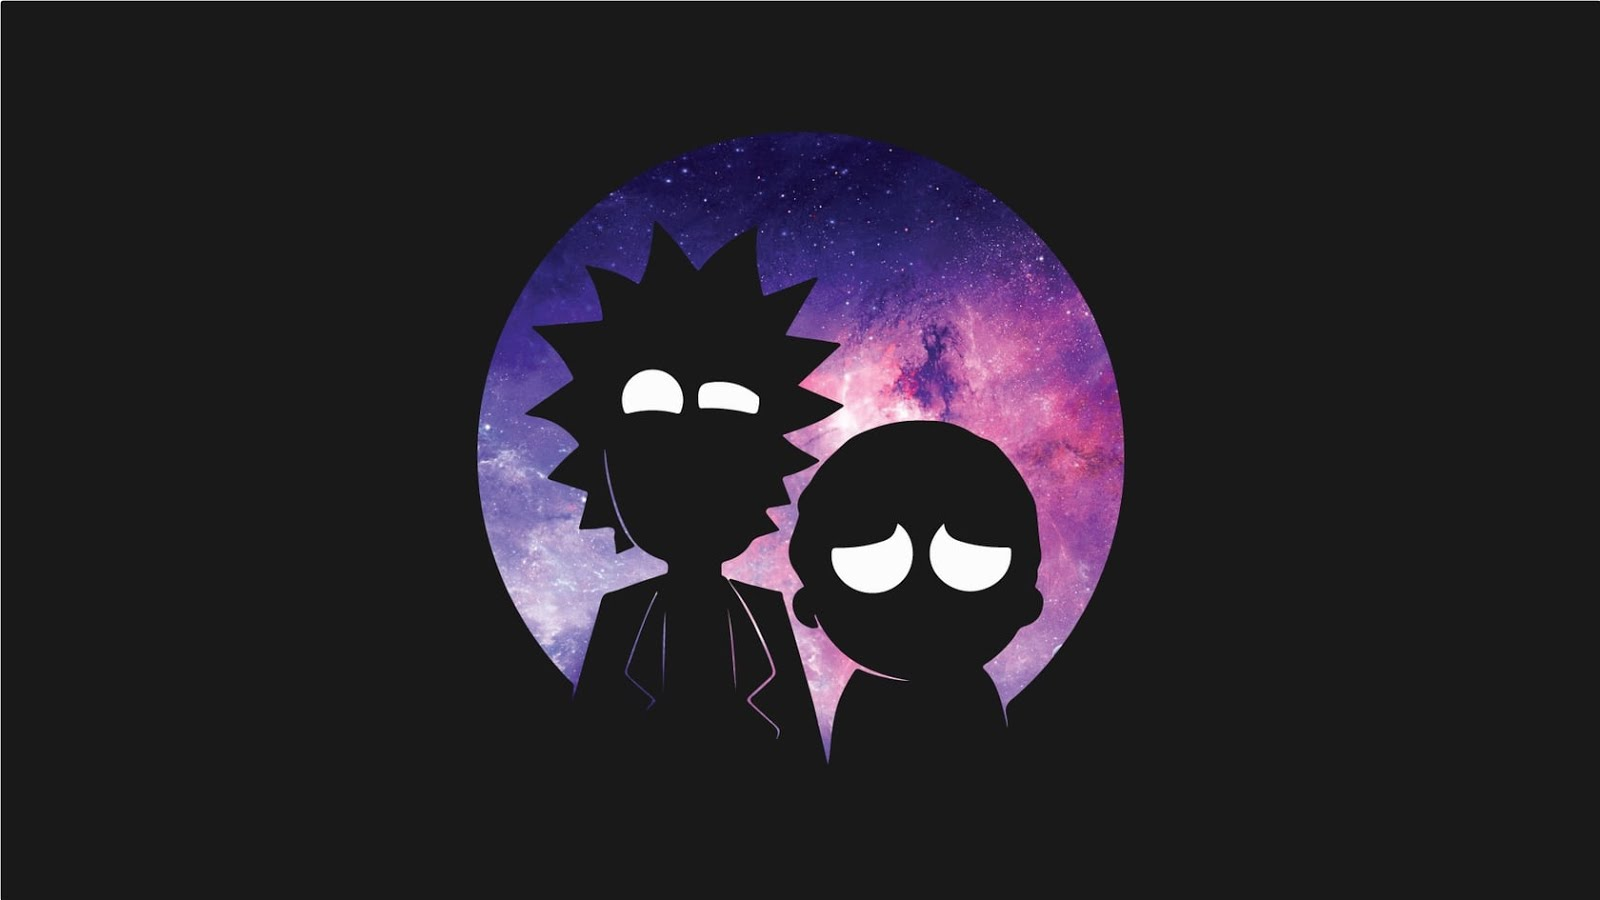 Unpreserve Dreinstates Cool Rick And Morty Wallpaper